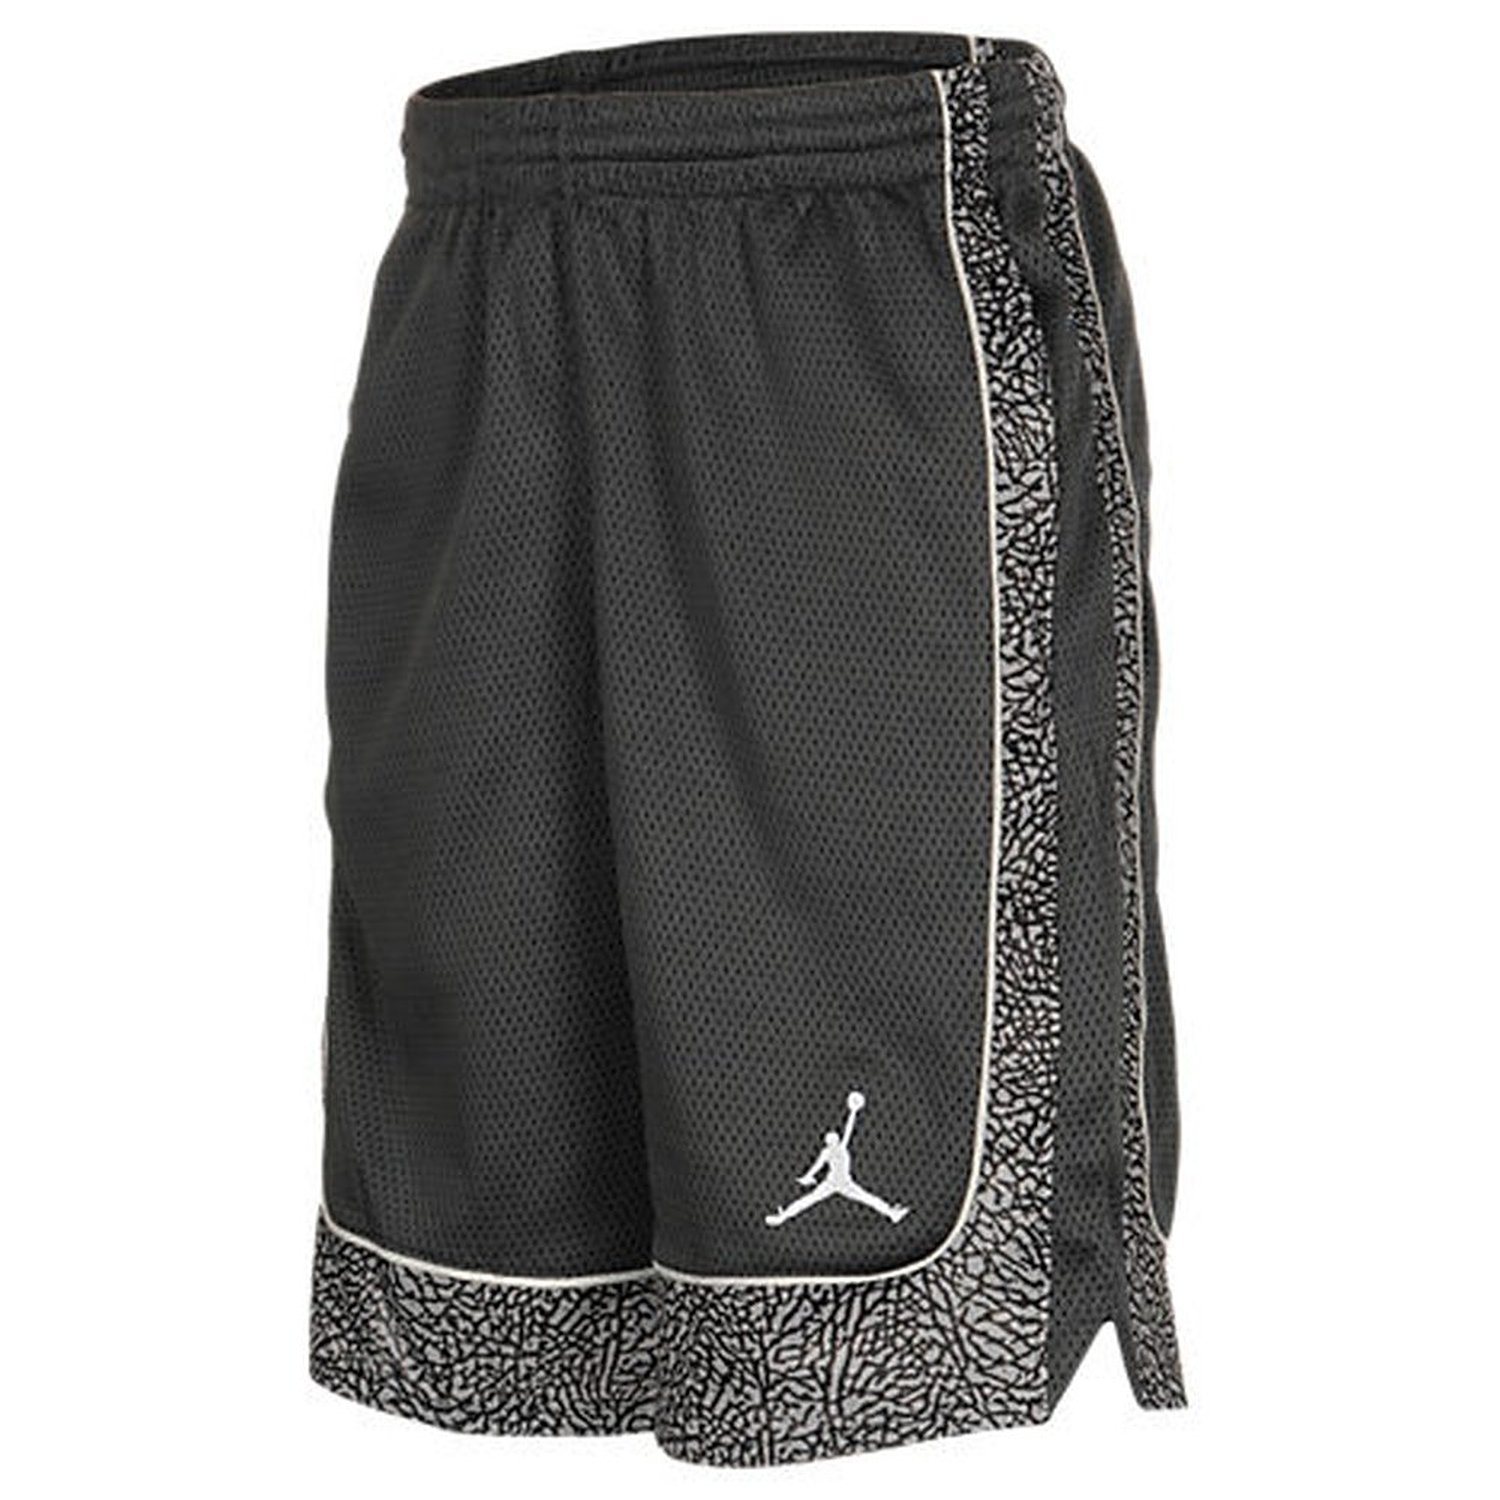 4fdc008eb5c Get Quotations · Nike Boys Elephants Print 2.0 Dri-Fit Basketball Shorts  Black/Grey